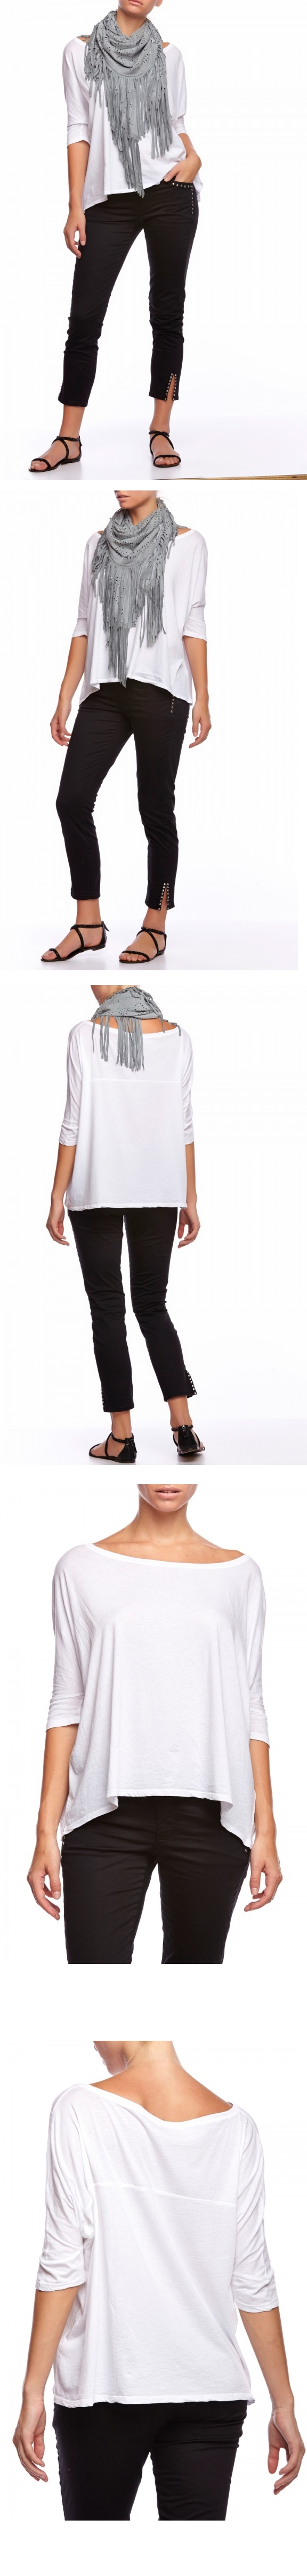 Very comfortable and stylish, with a wide neckline and loose underneath the sleeves. Angled sides around the waist. This loose-fitting 3/4 sleeved shirt wears well with the Hunkydory 4 Pocket Twill Pant and Leather Body Huggers. #Magentacouture #Designer #Hunkydory #JerseySquare http://magentacouture.com/detail/jersey-square#sthash.CzbwGSUt.dpuf